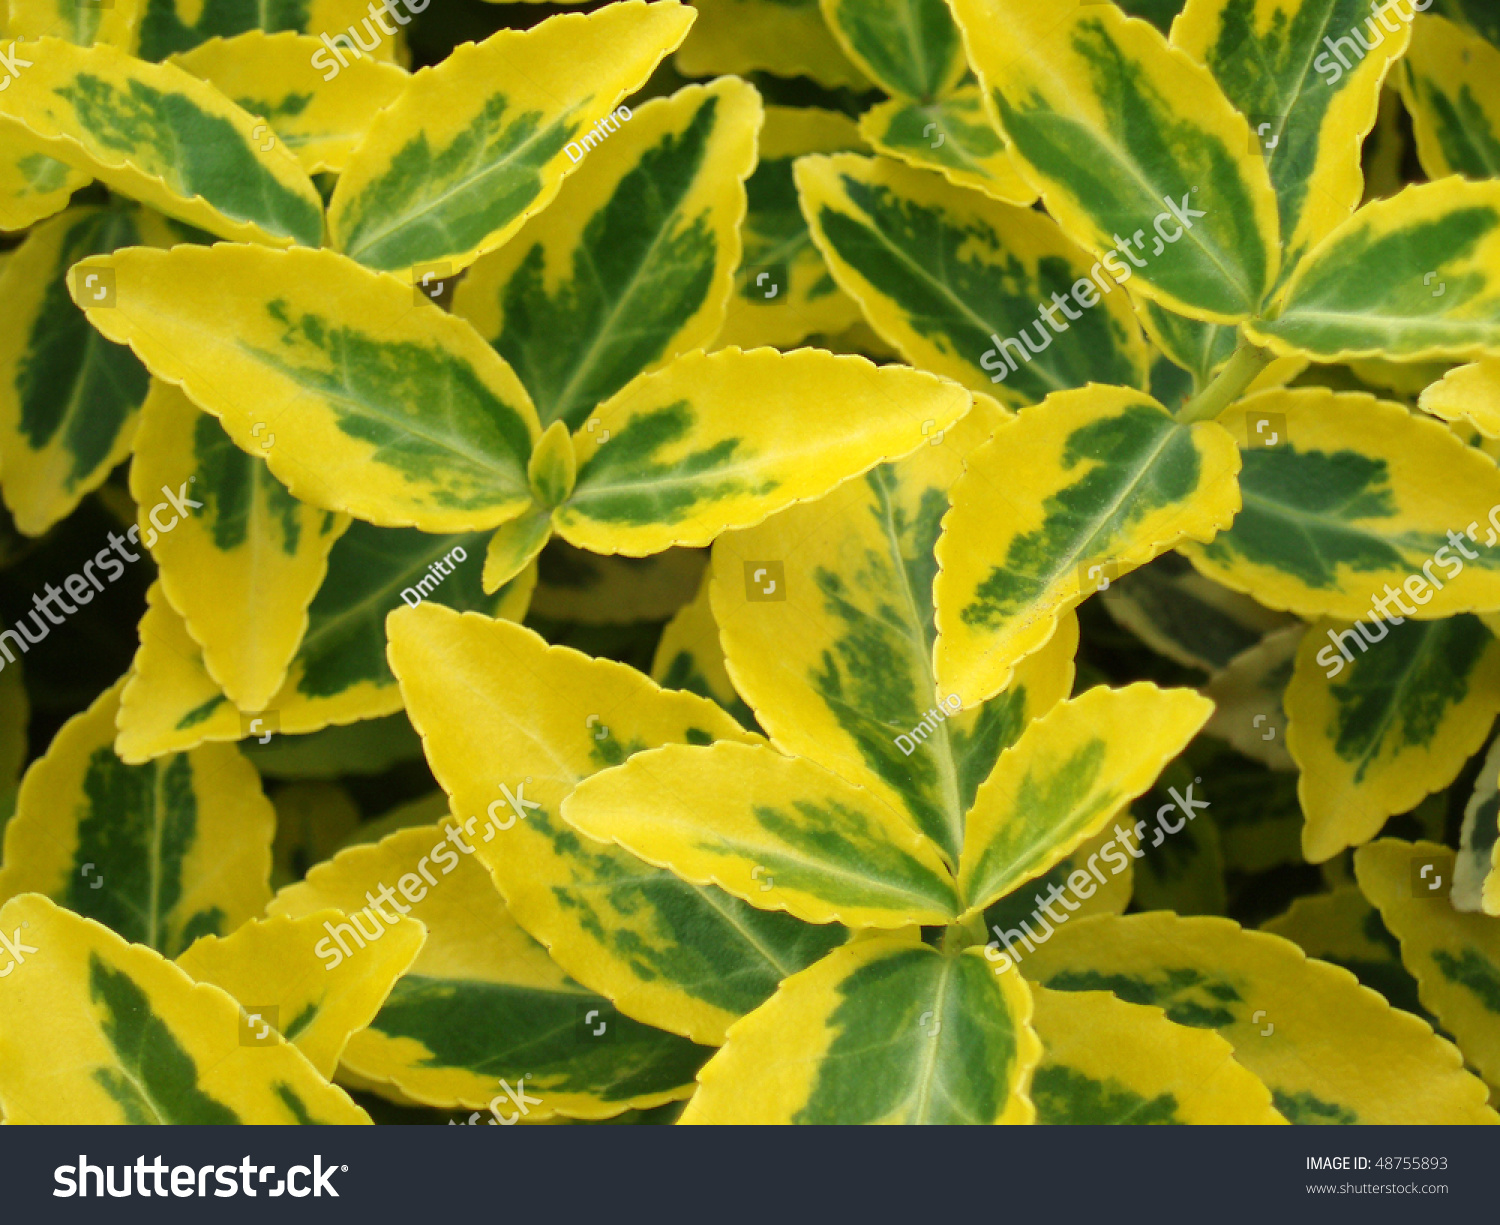 Yellowgreen Leaves Tropical Plant Macro Stock Photo Edit Now 48755893 So i make sure to be proactive in trimming any crispy or yellow leaves. https www shutterstock com image photo yellowgreen leaves tropical plant macro 48755893